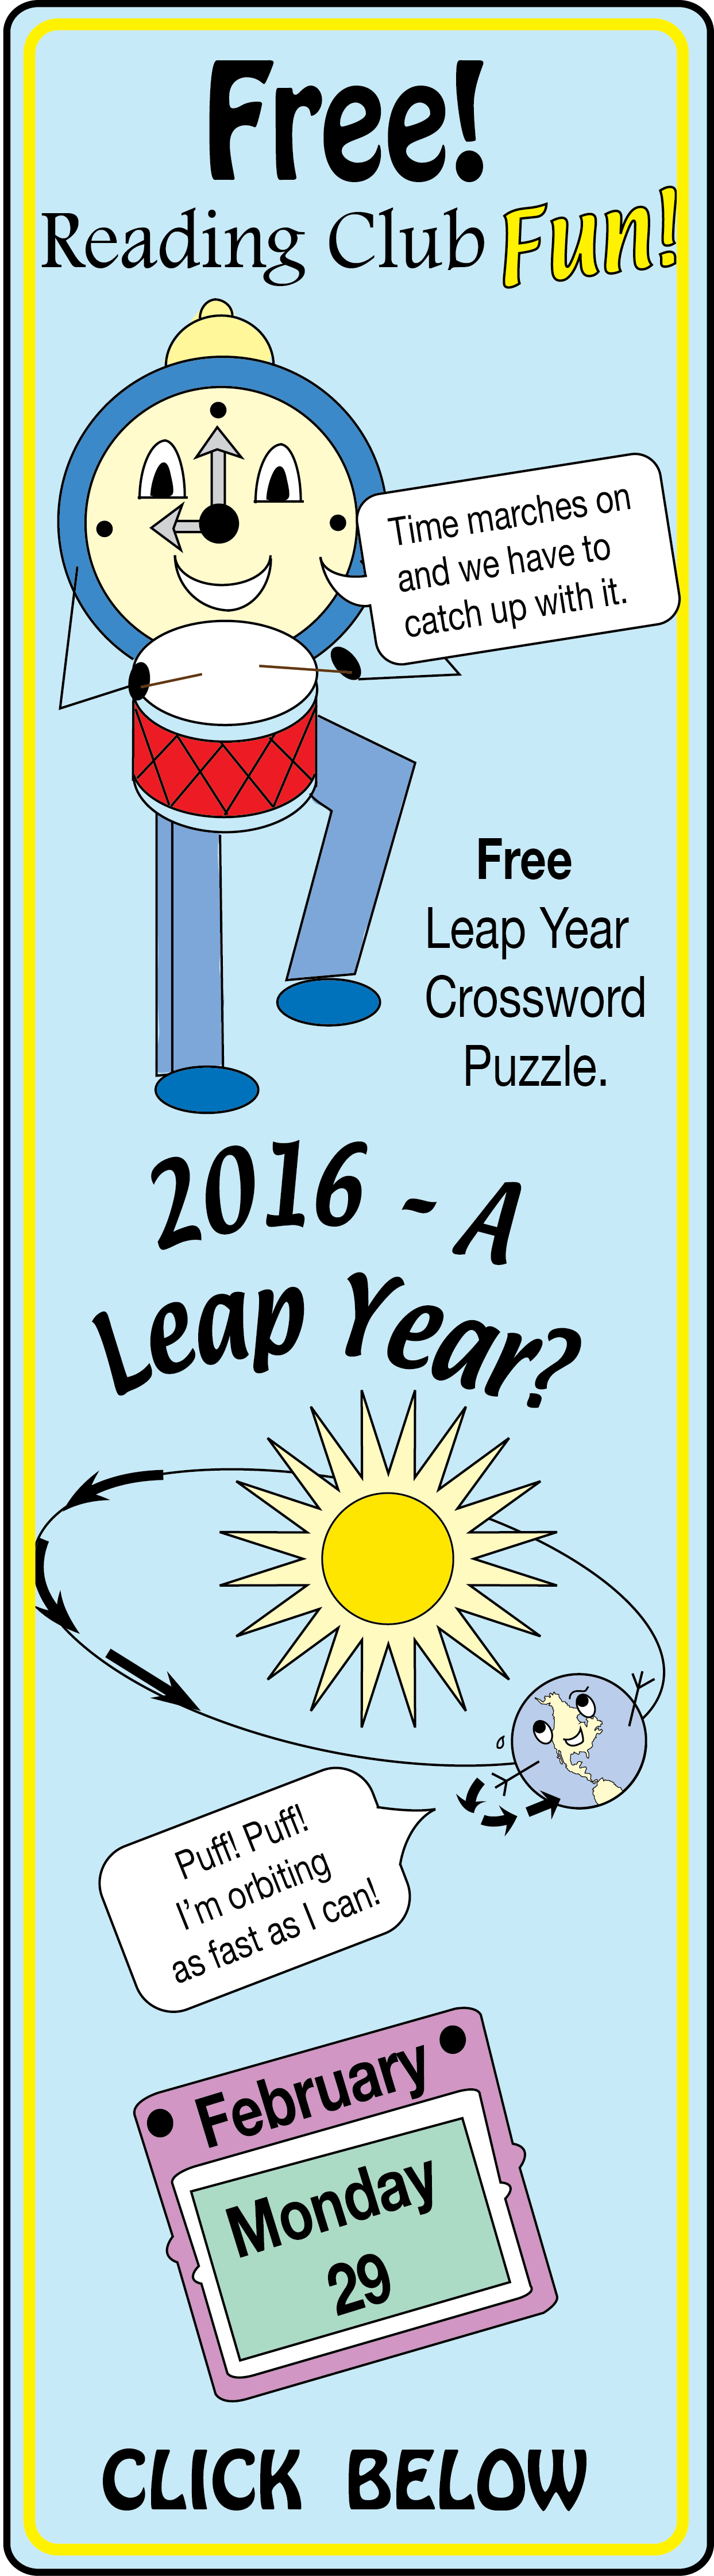 New Year Crossword Puzzle Pdf Crossword Puzzle Gallery | Jymba fall ...